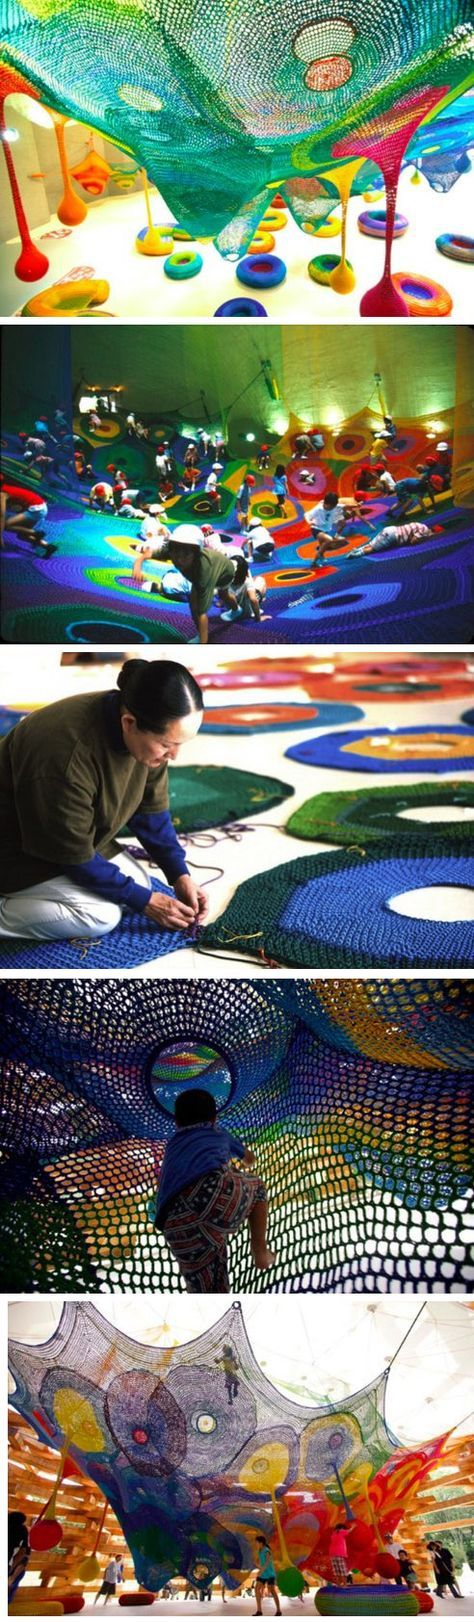 Japanese-born fiber artist Toshiko Horiuchi MacAdam's crocheted playgrounds for children